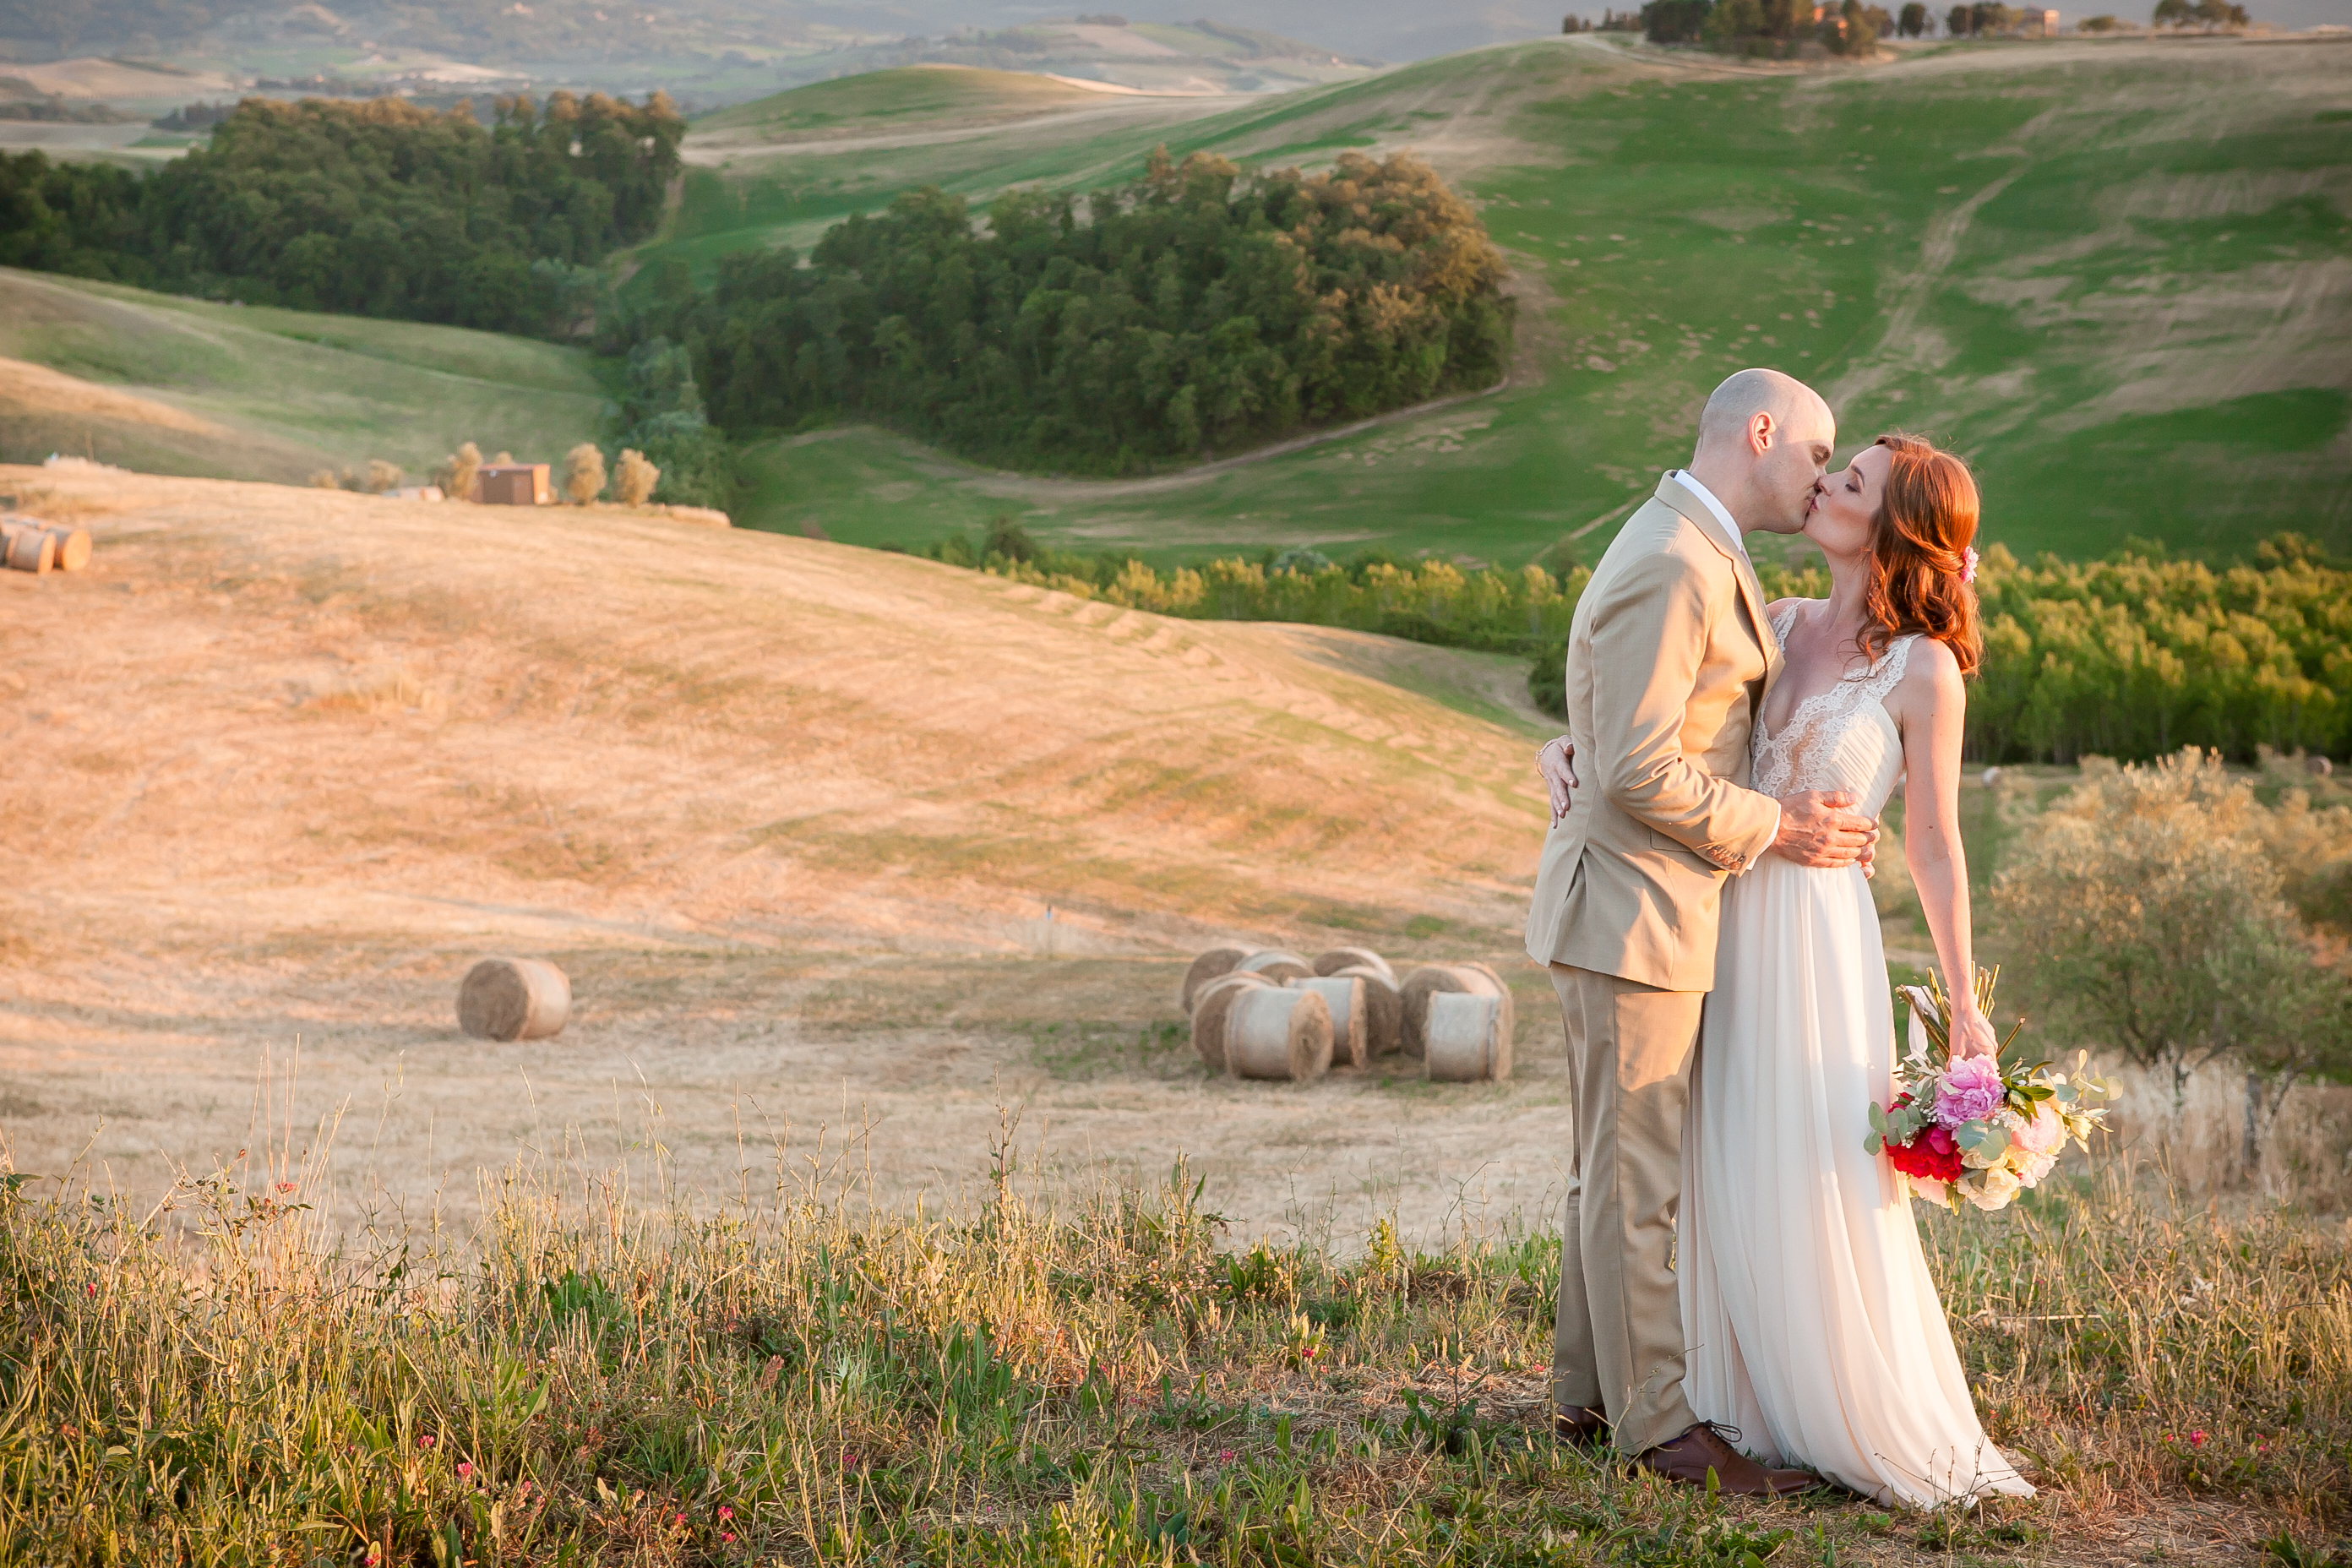 Bride & Groom kiss - Countryside Wedding in Tuscany